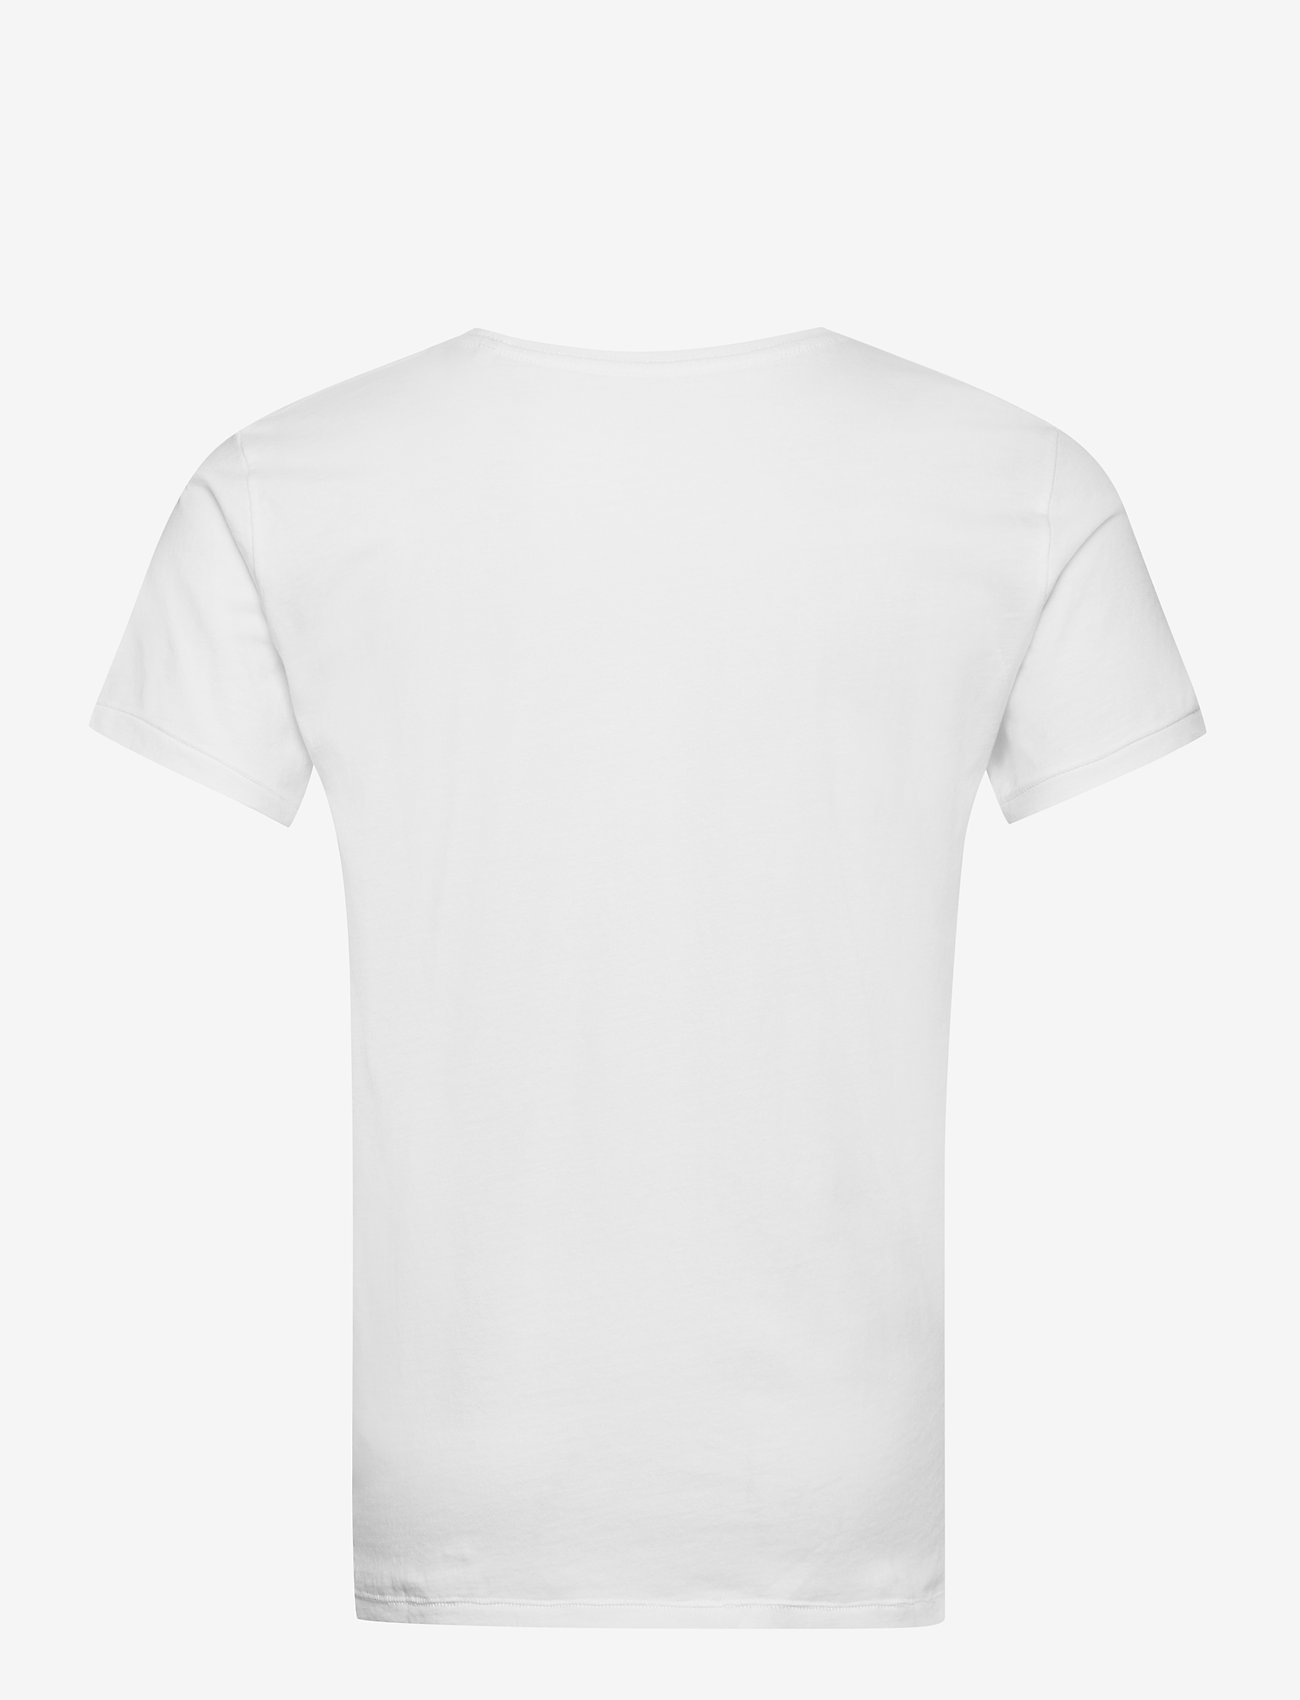 Knowledge Cotton Apparel - ALDER 5 pack basic tee - flat packe - basic t-shirts - bright white - 3